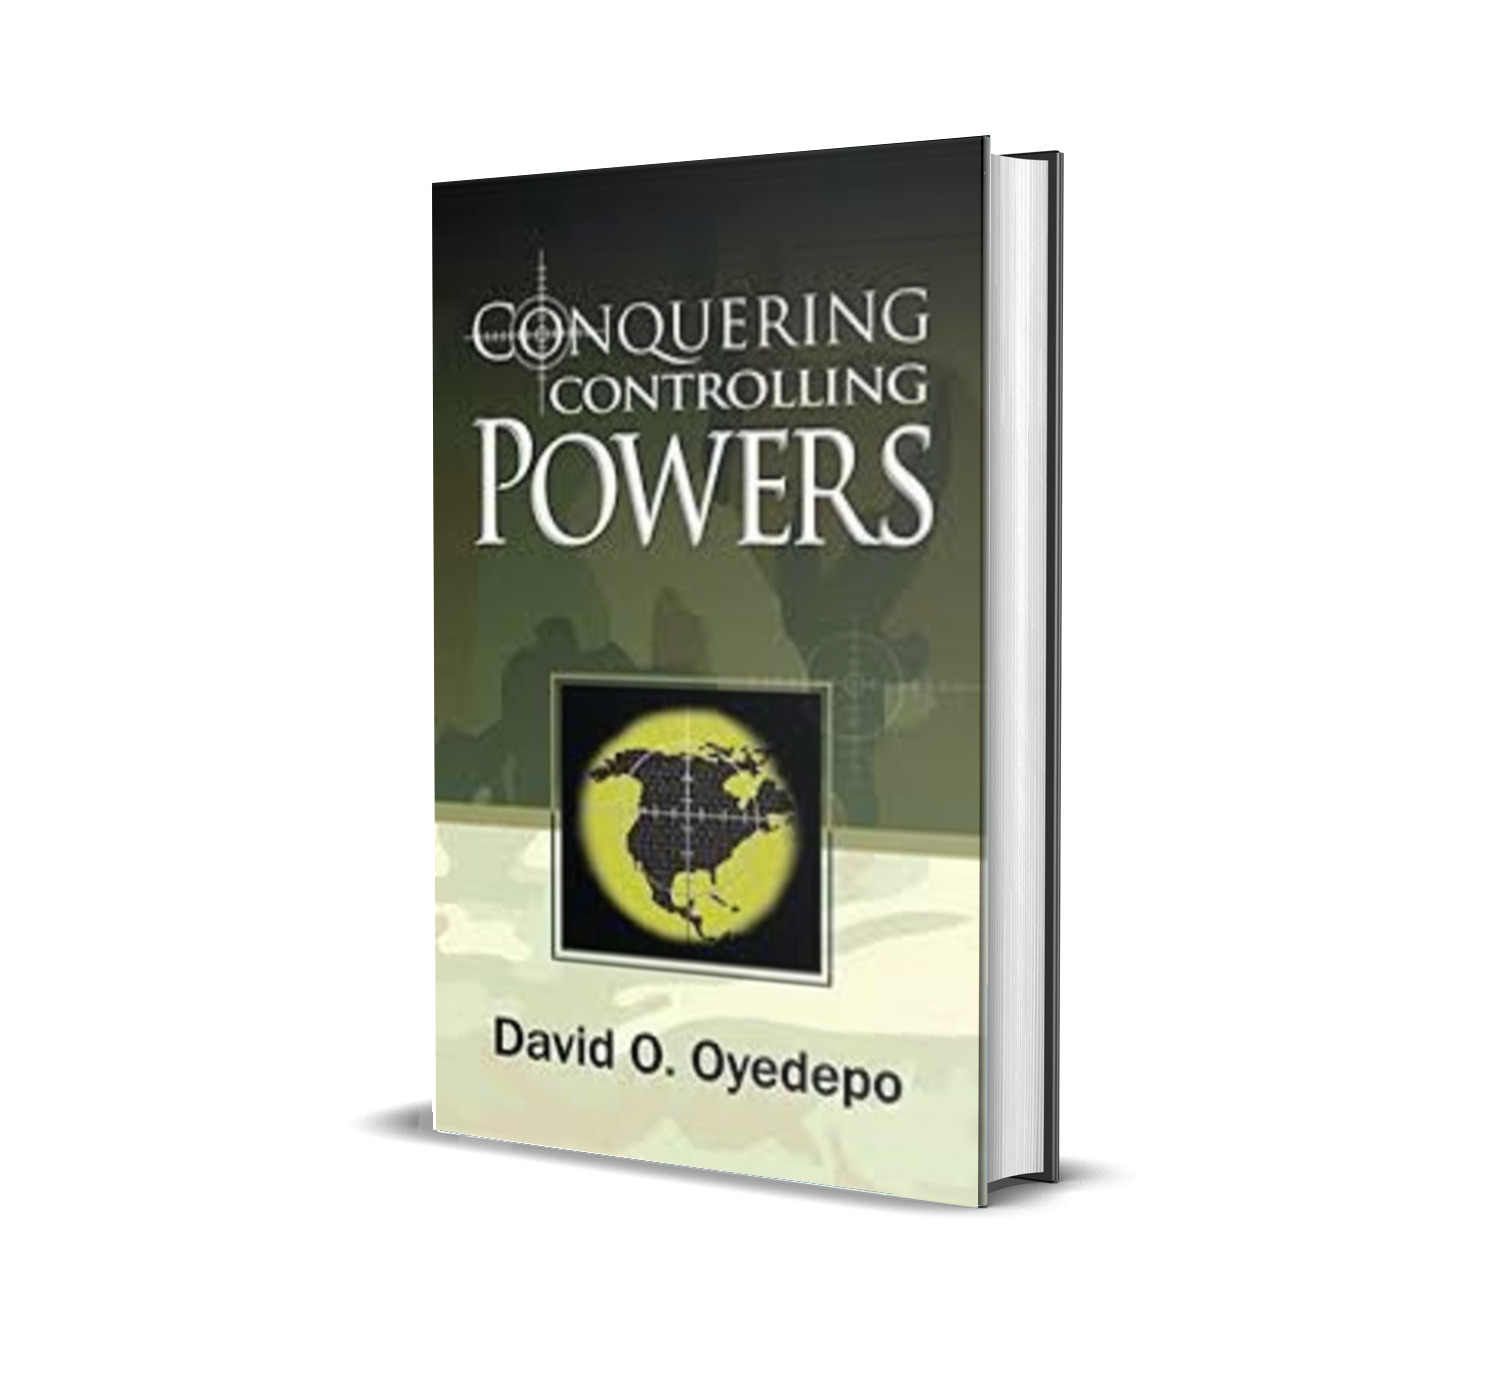 CONQUERING CONTROLLING POWERS DAVID OYEDEPO